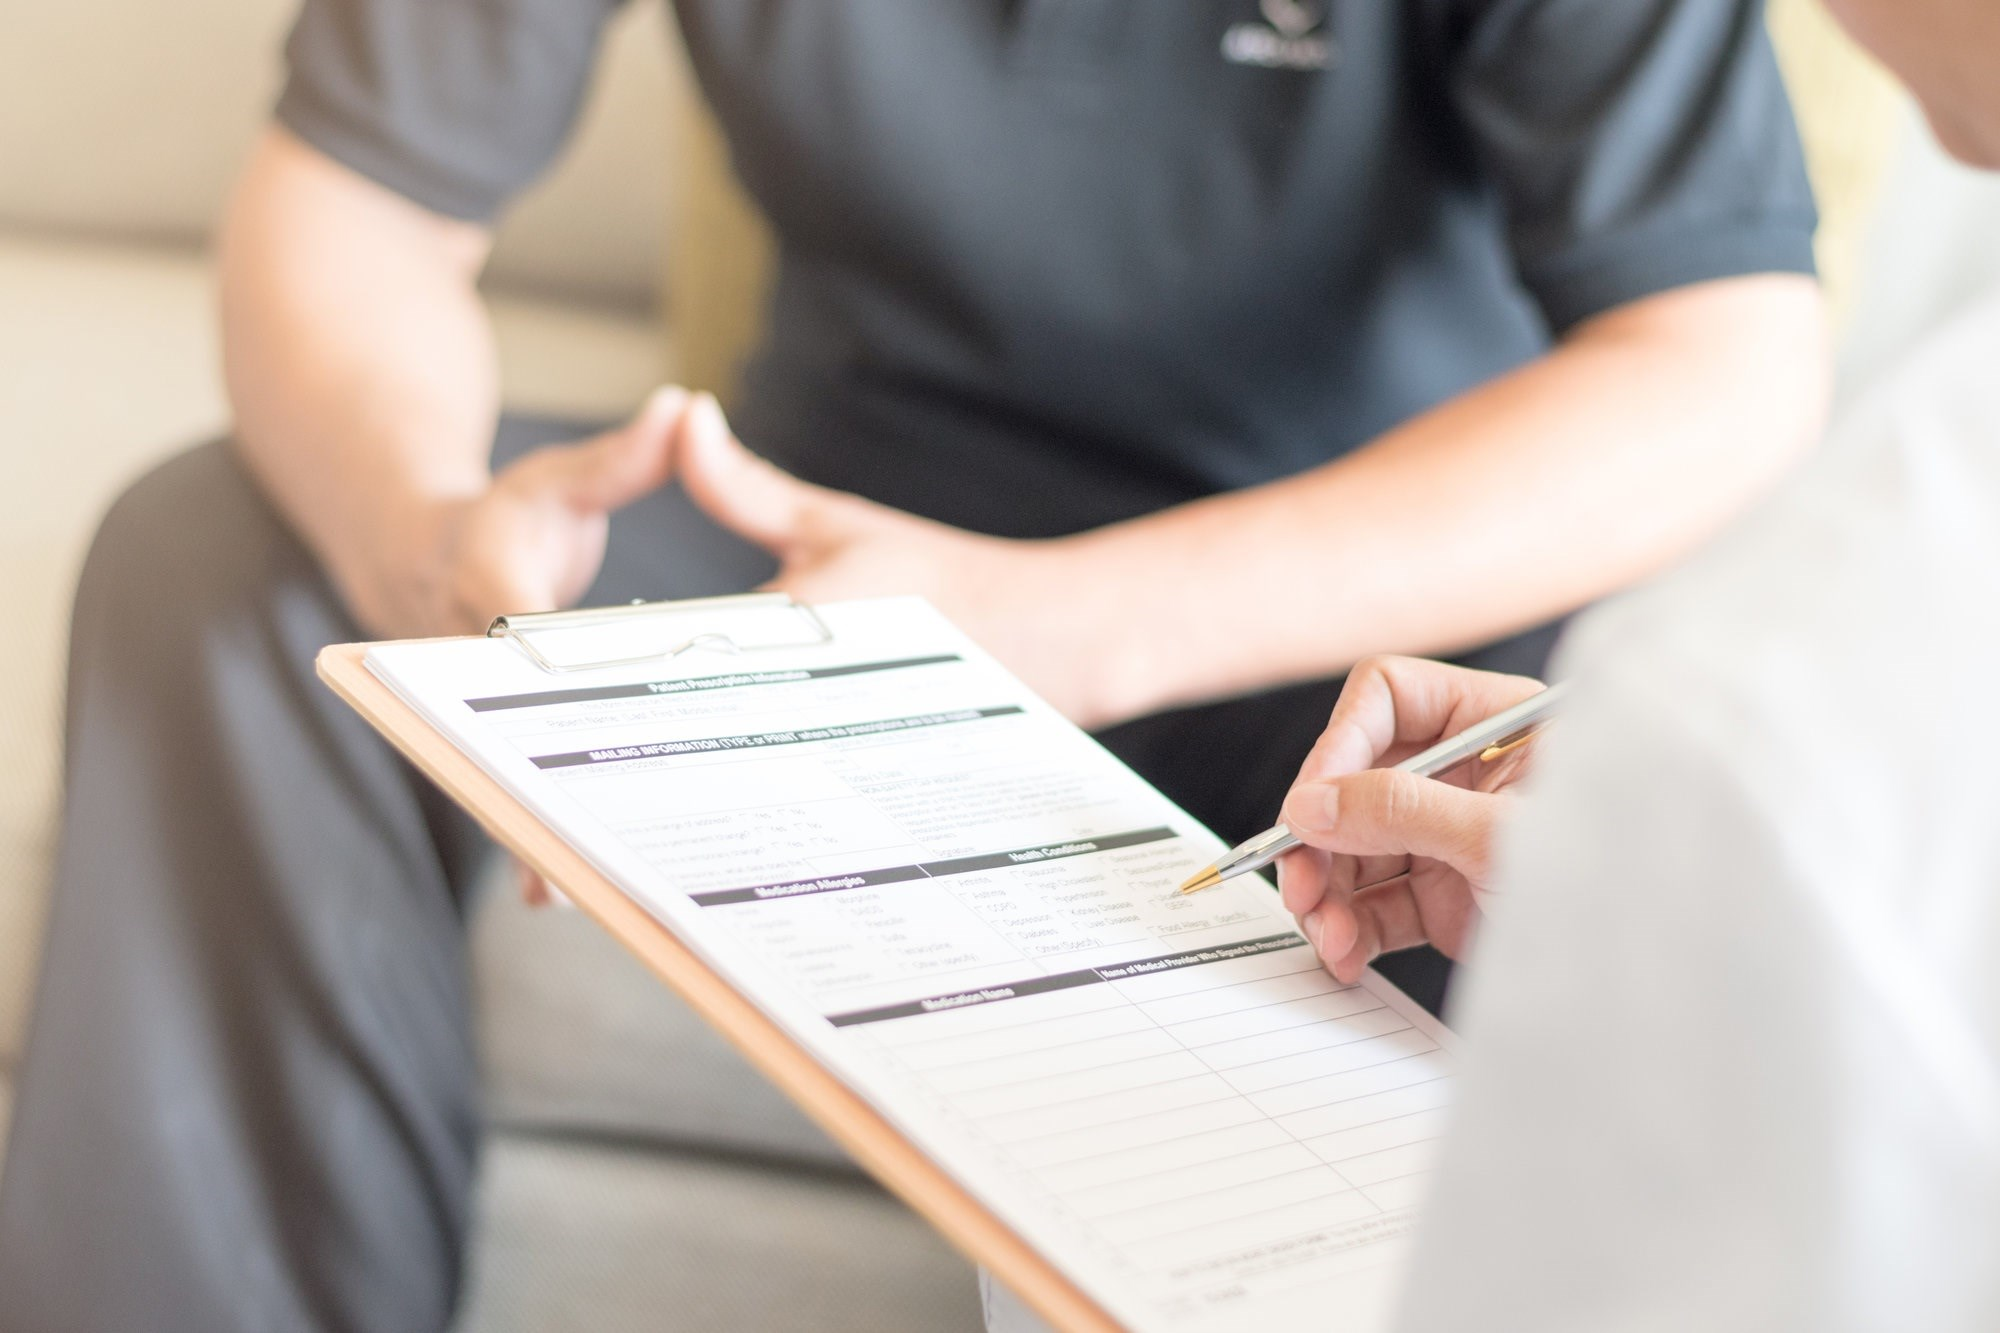 Patients with PTSD should consider concurrent treatment with evidence-based psychotherapy to maximize their chances for meaningful improvement.